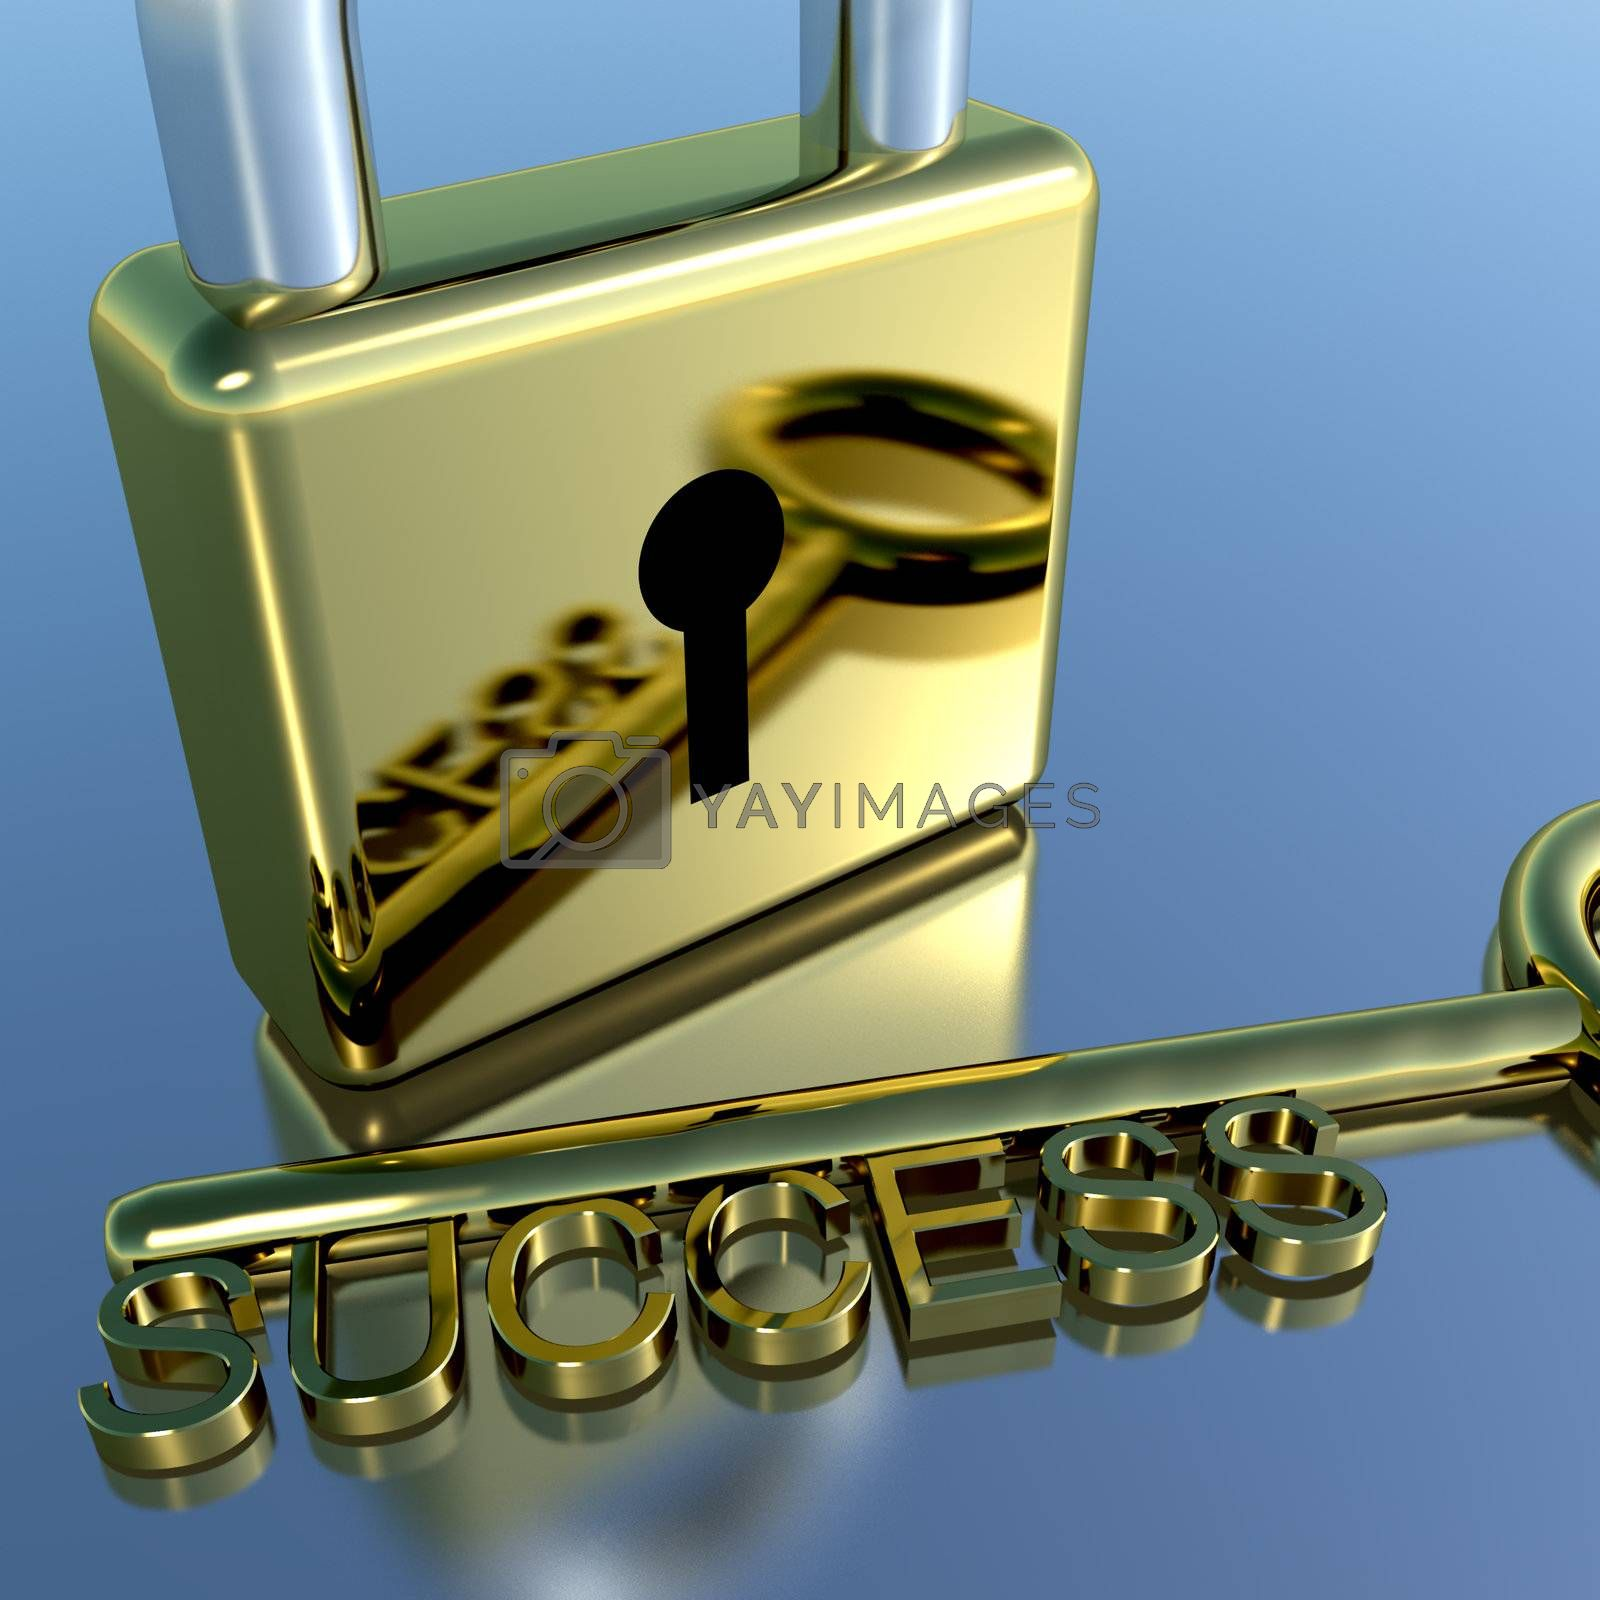 Padlock With Success Key Showing Strategy Planning Or Solutions